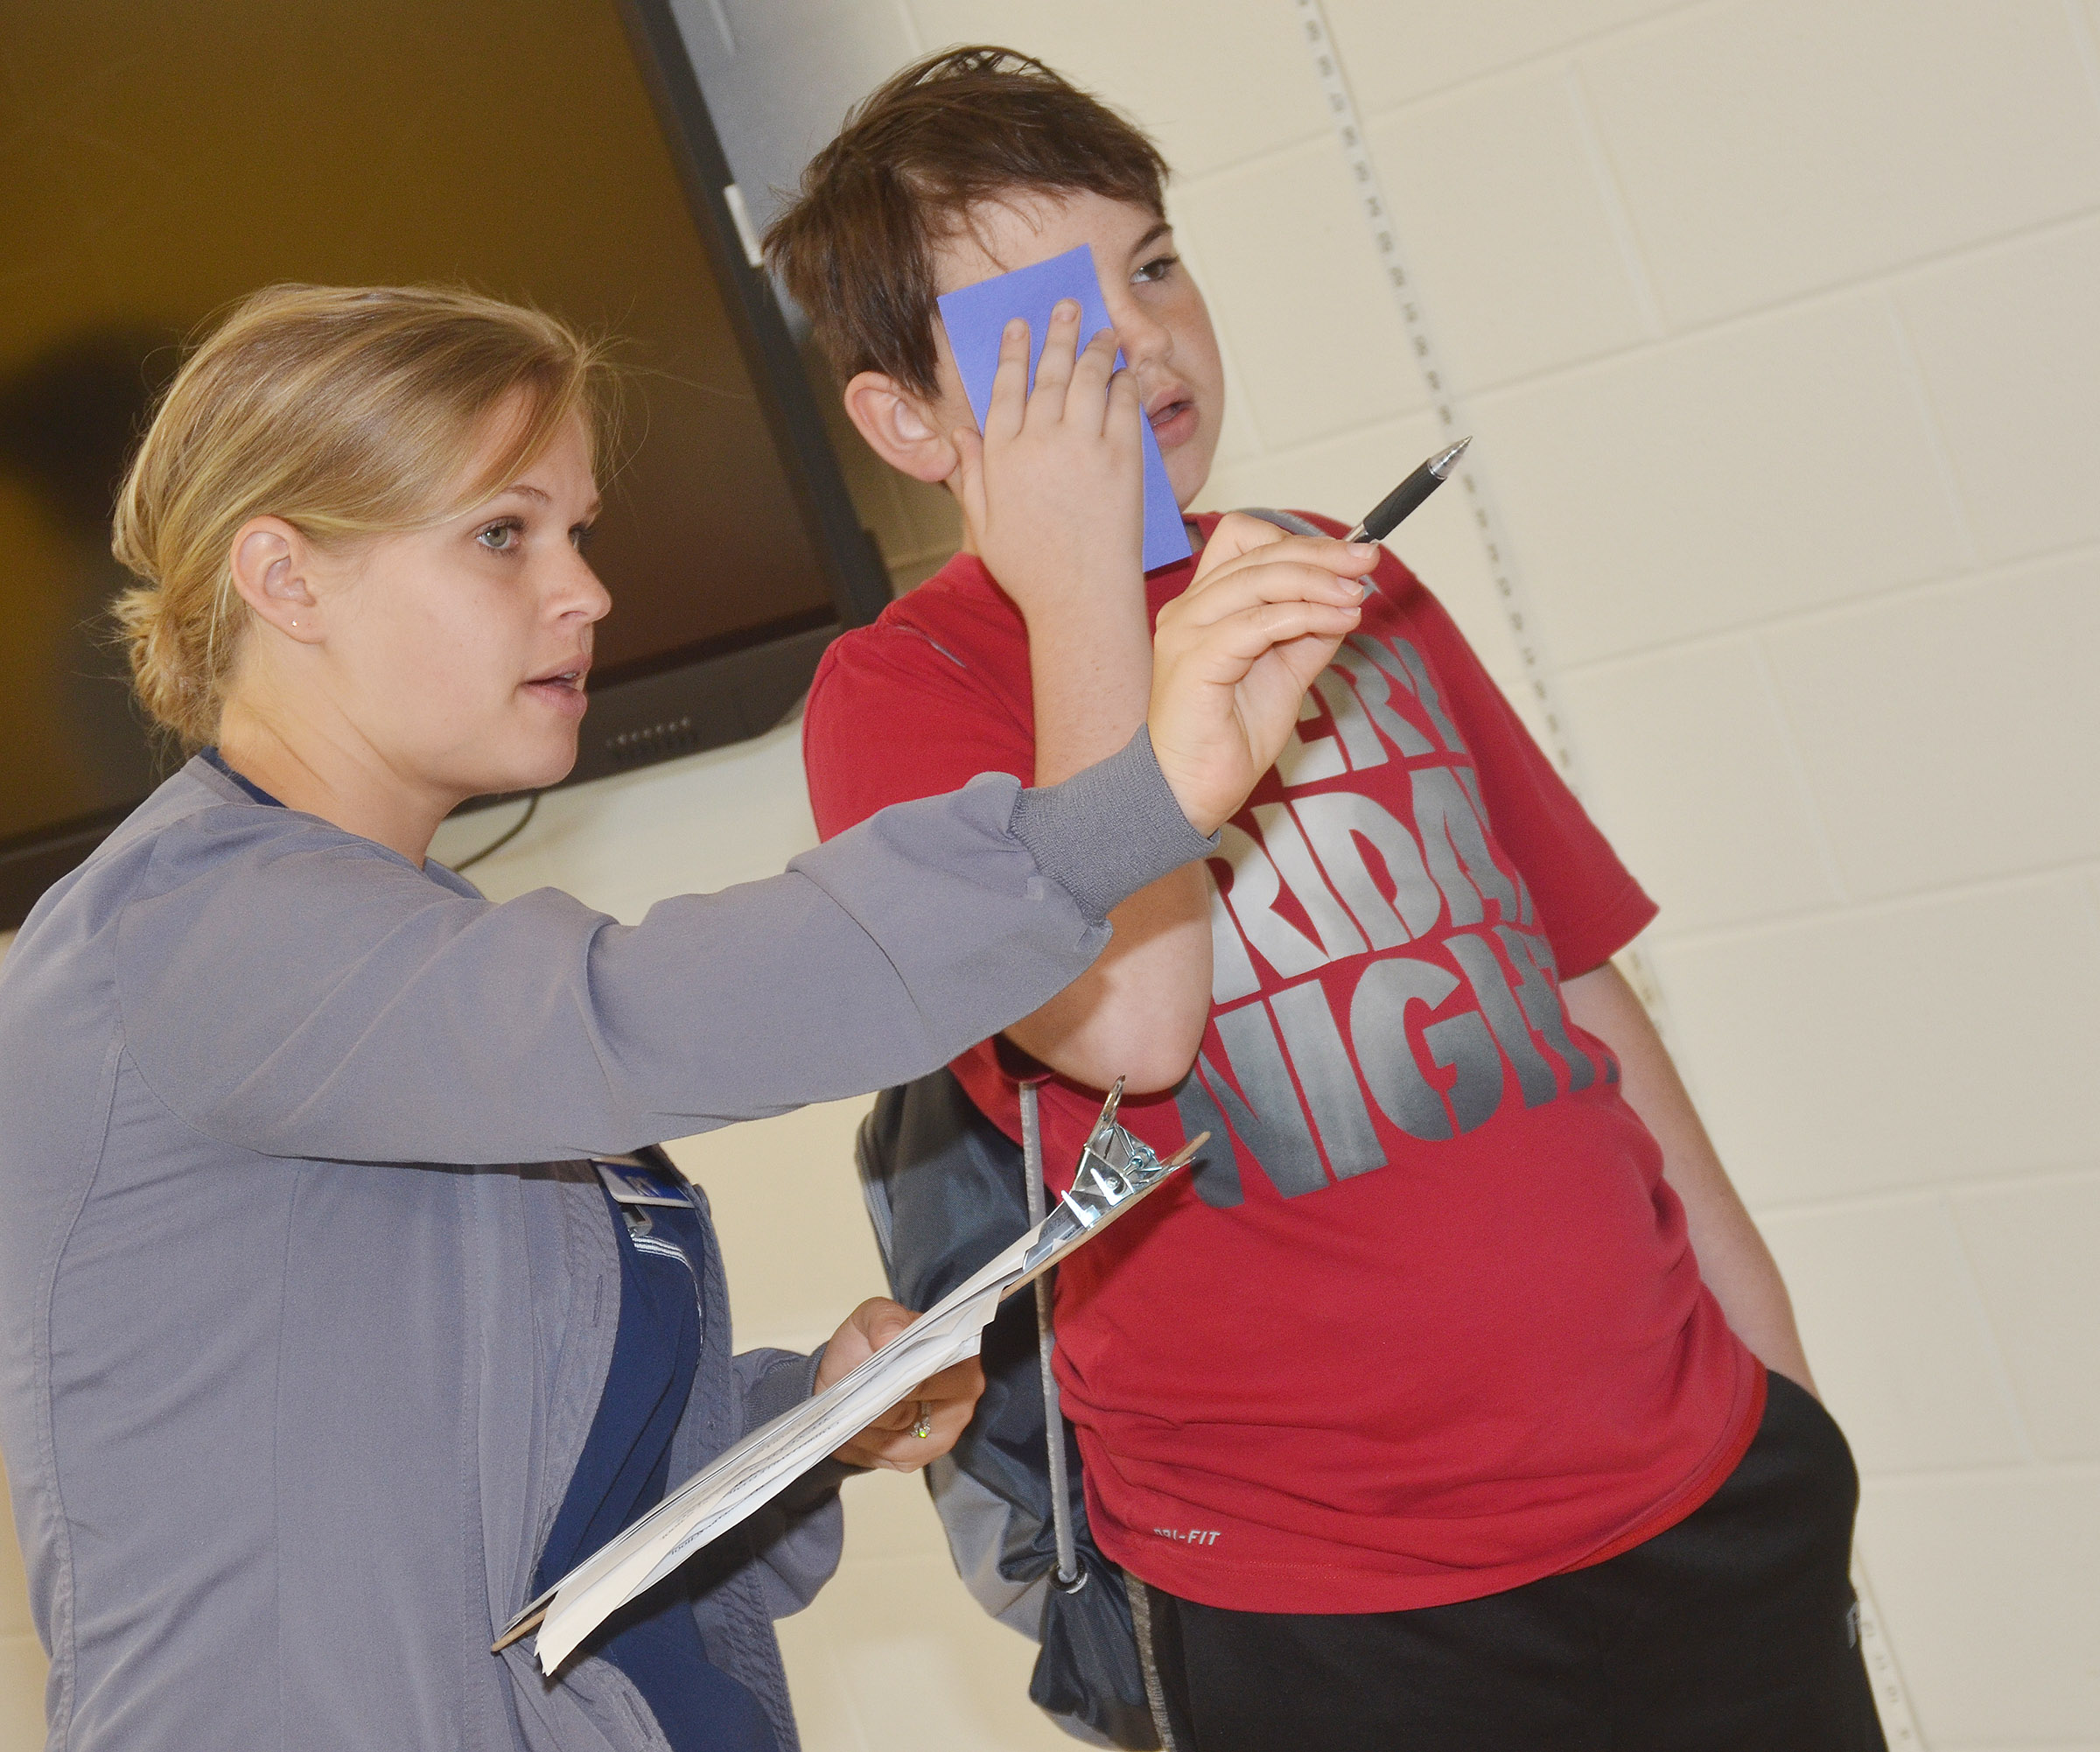 CES fifth-grader Cody Agee undergoes an eye exam with Brandie Adams, a registered nurse at Taylor Regional Hospital.